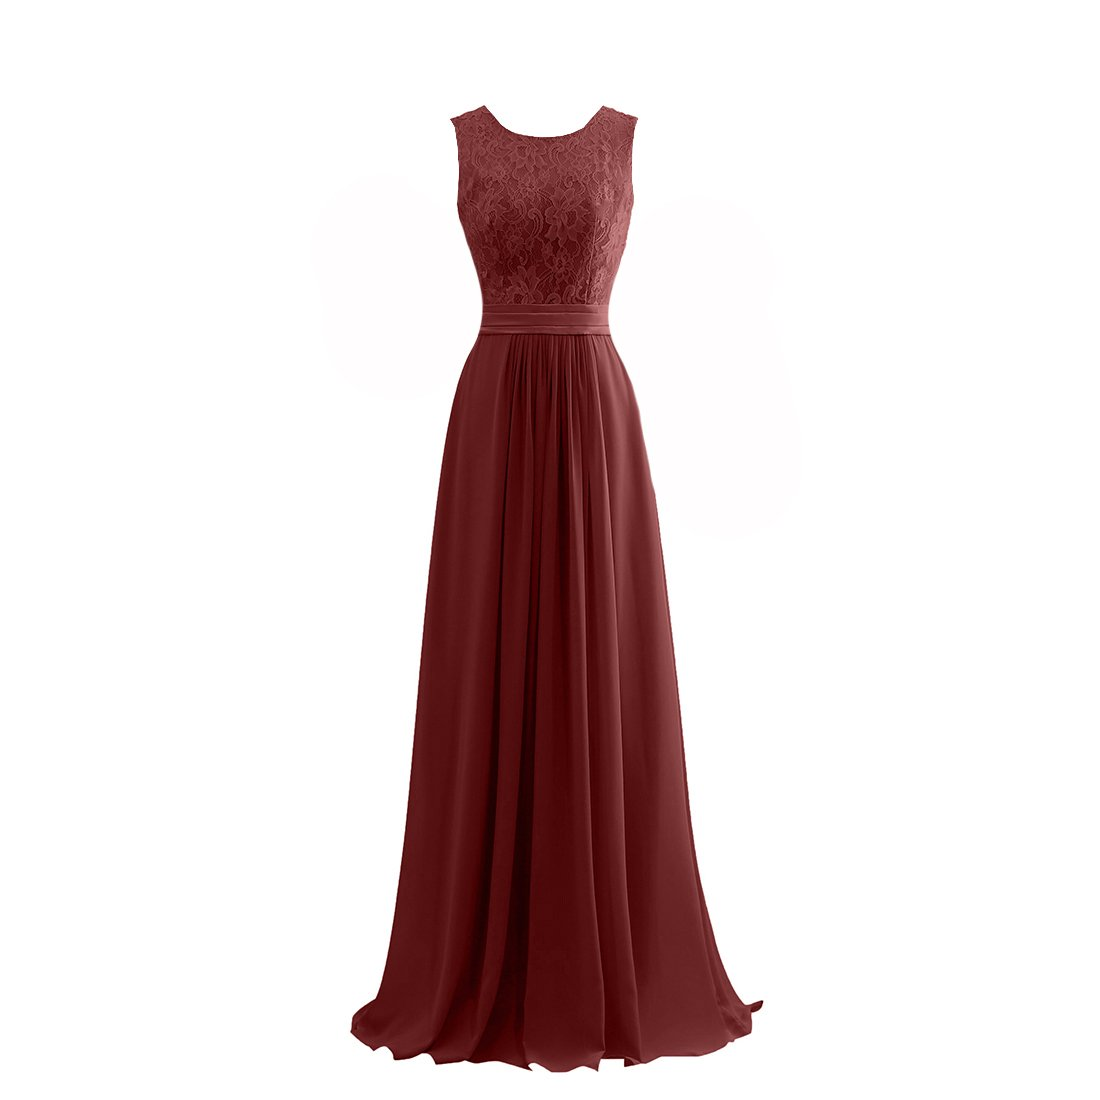 e7aac0478f7 Wine Red Lace Bridesmaid Dresses - raveitsafe